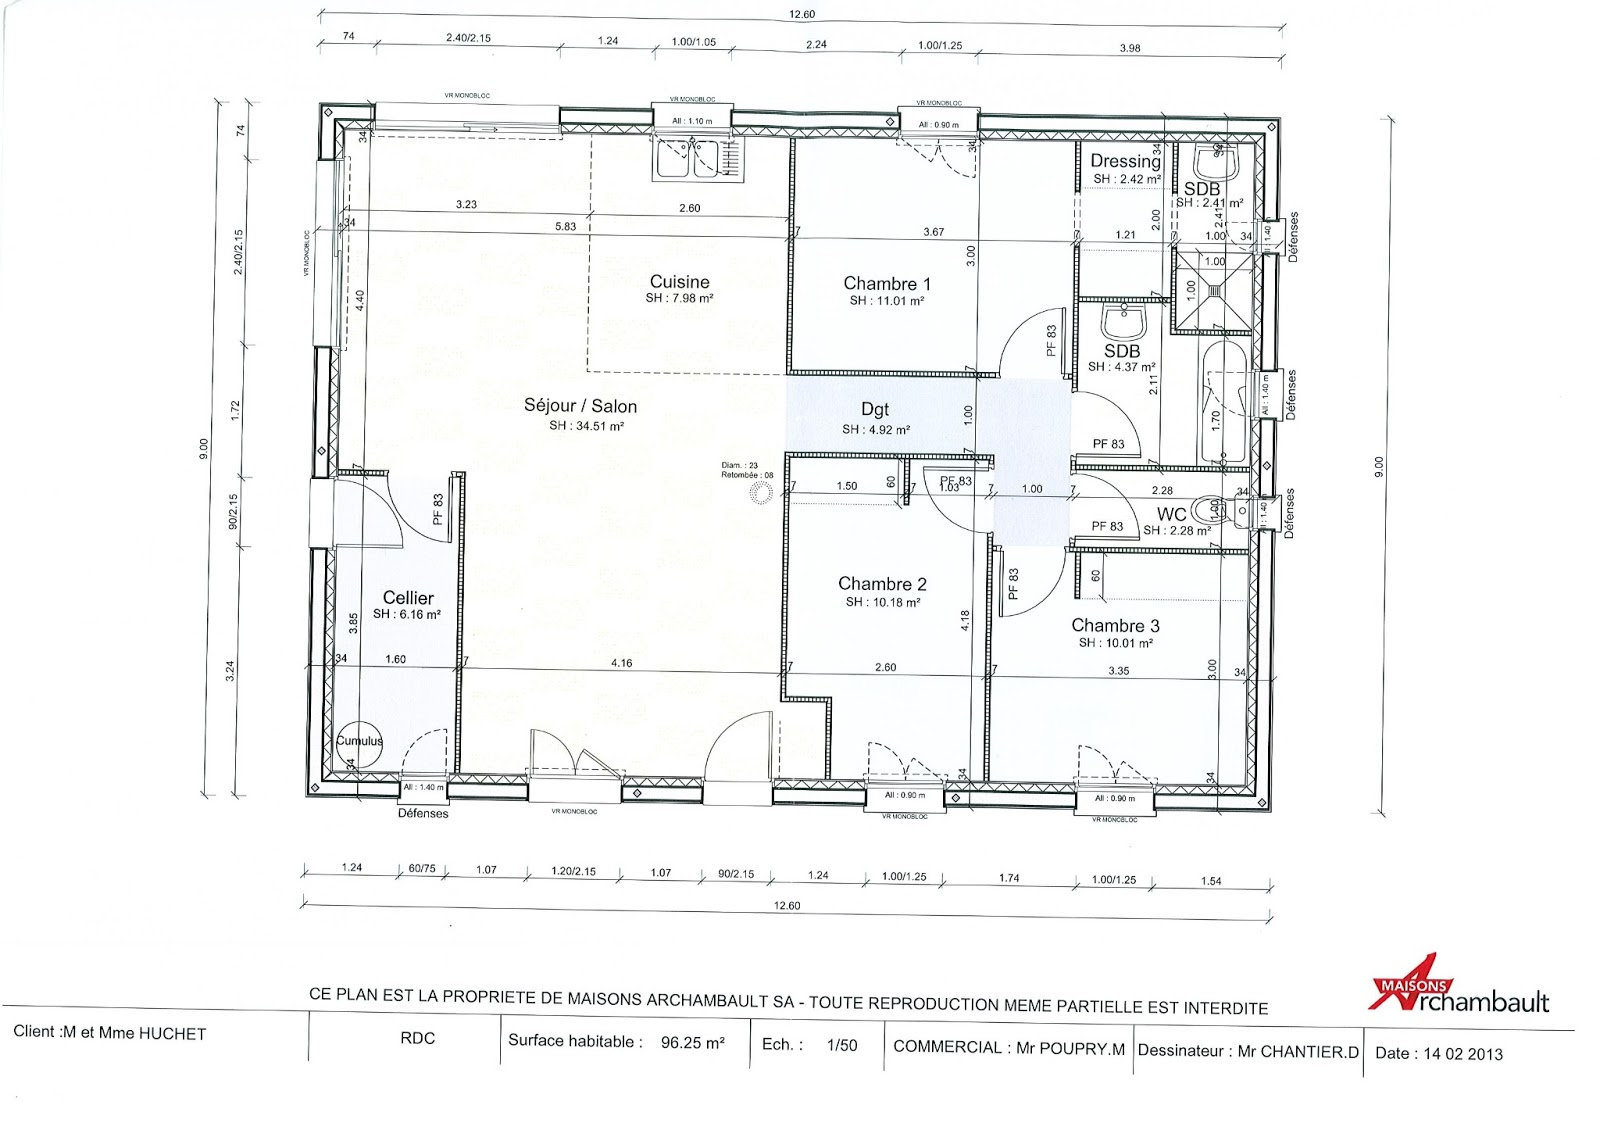 Plan interieur maison en l for Plan interieur maison en u